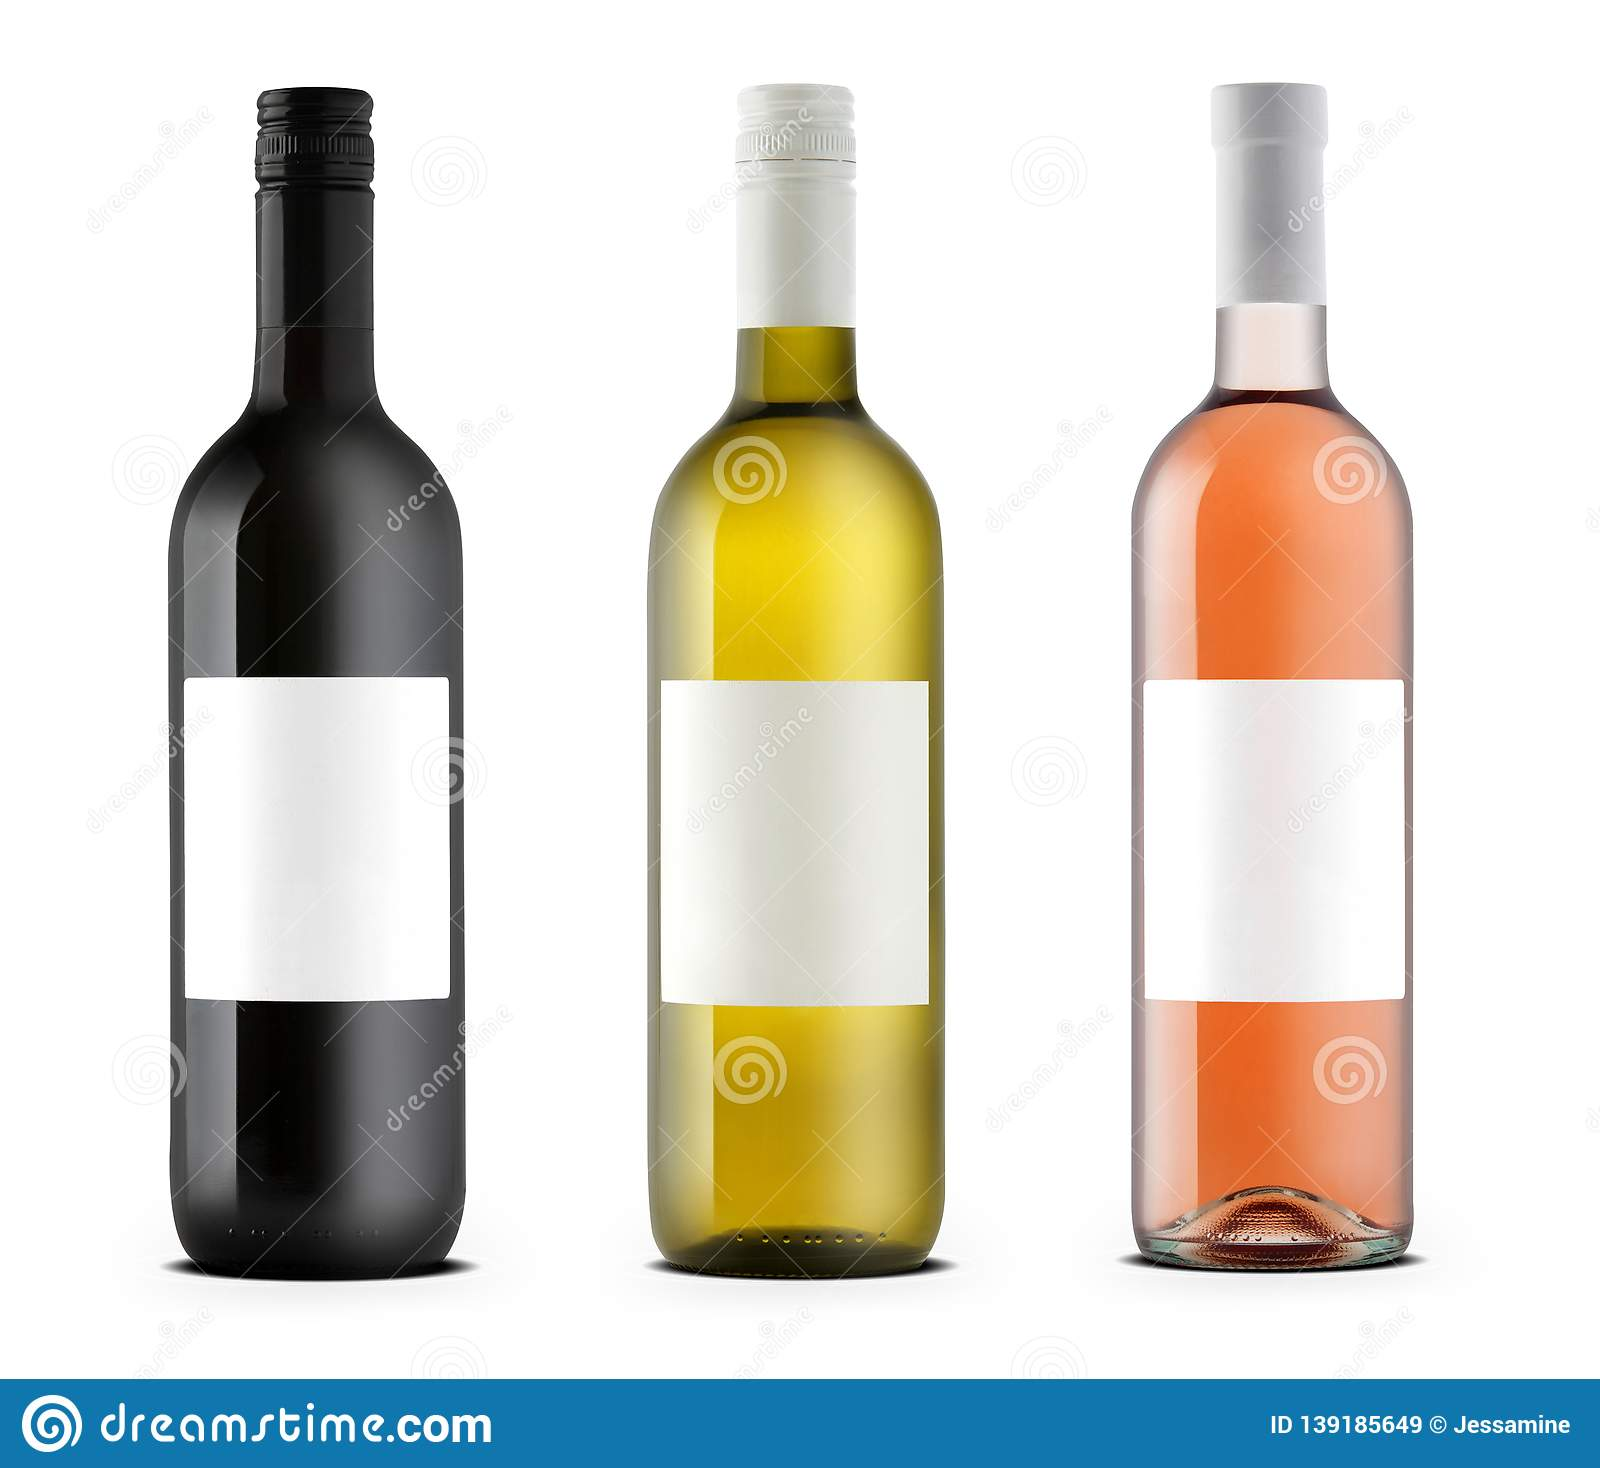 Wine bottles rose, white and black